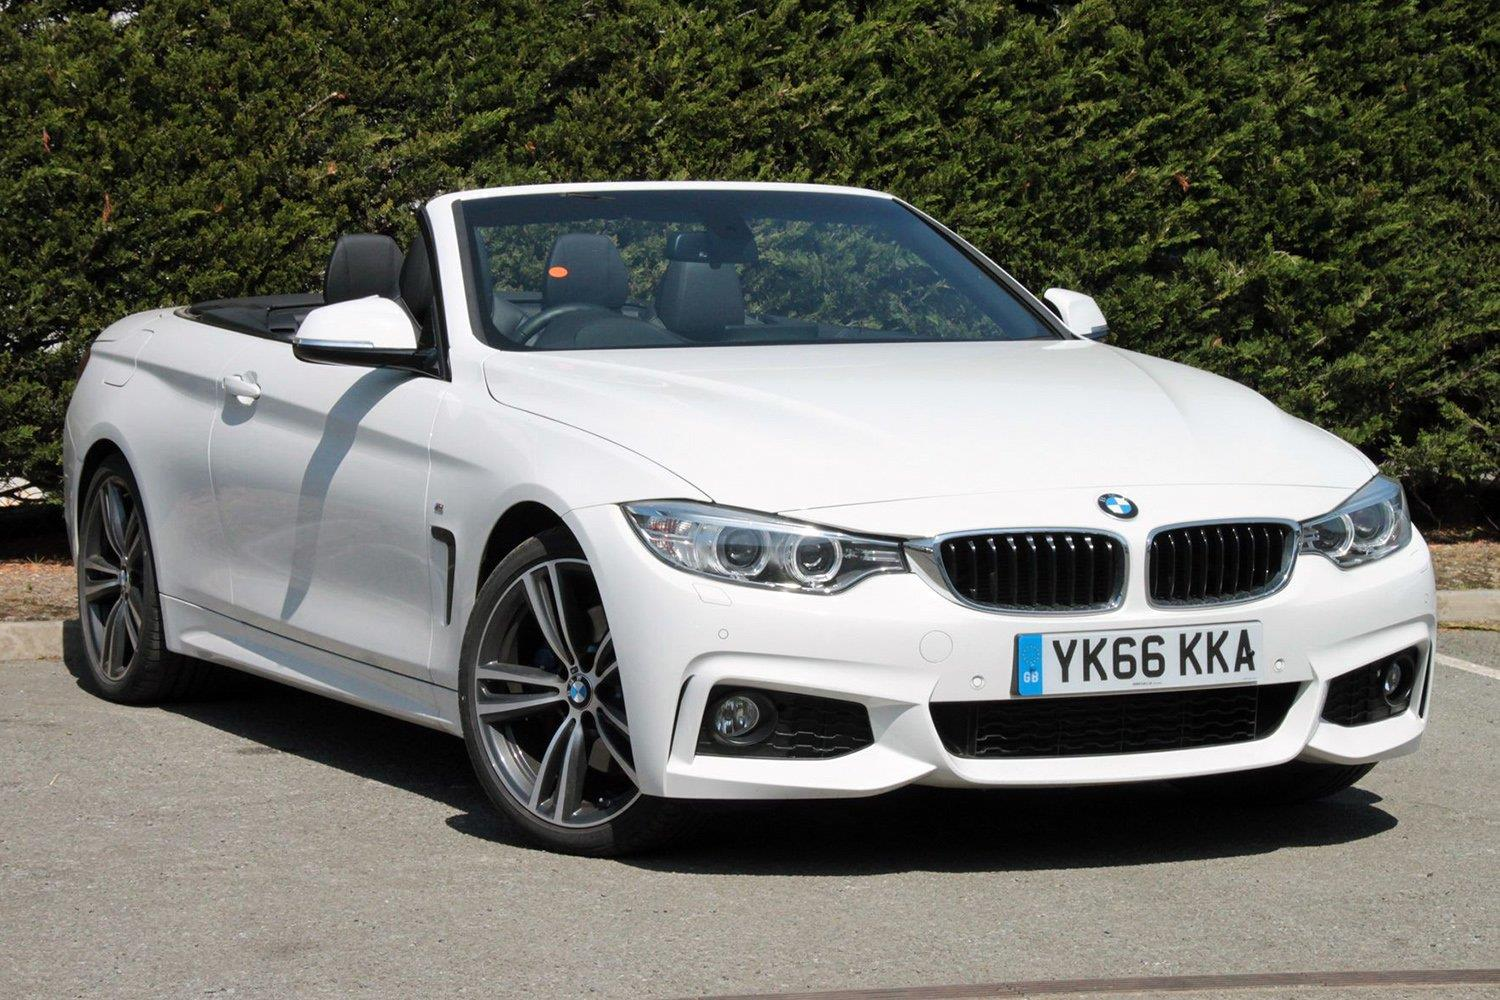 BMW 4 Series Convertible YK66KKA - Image 5